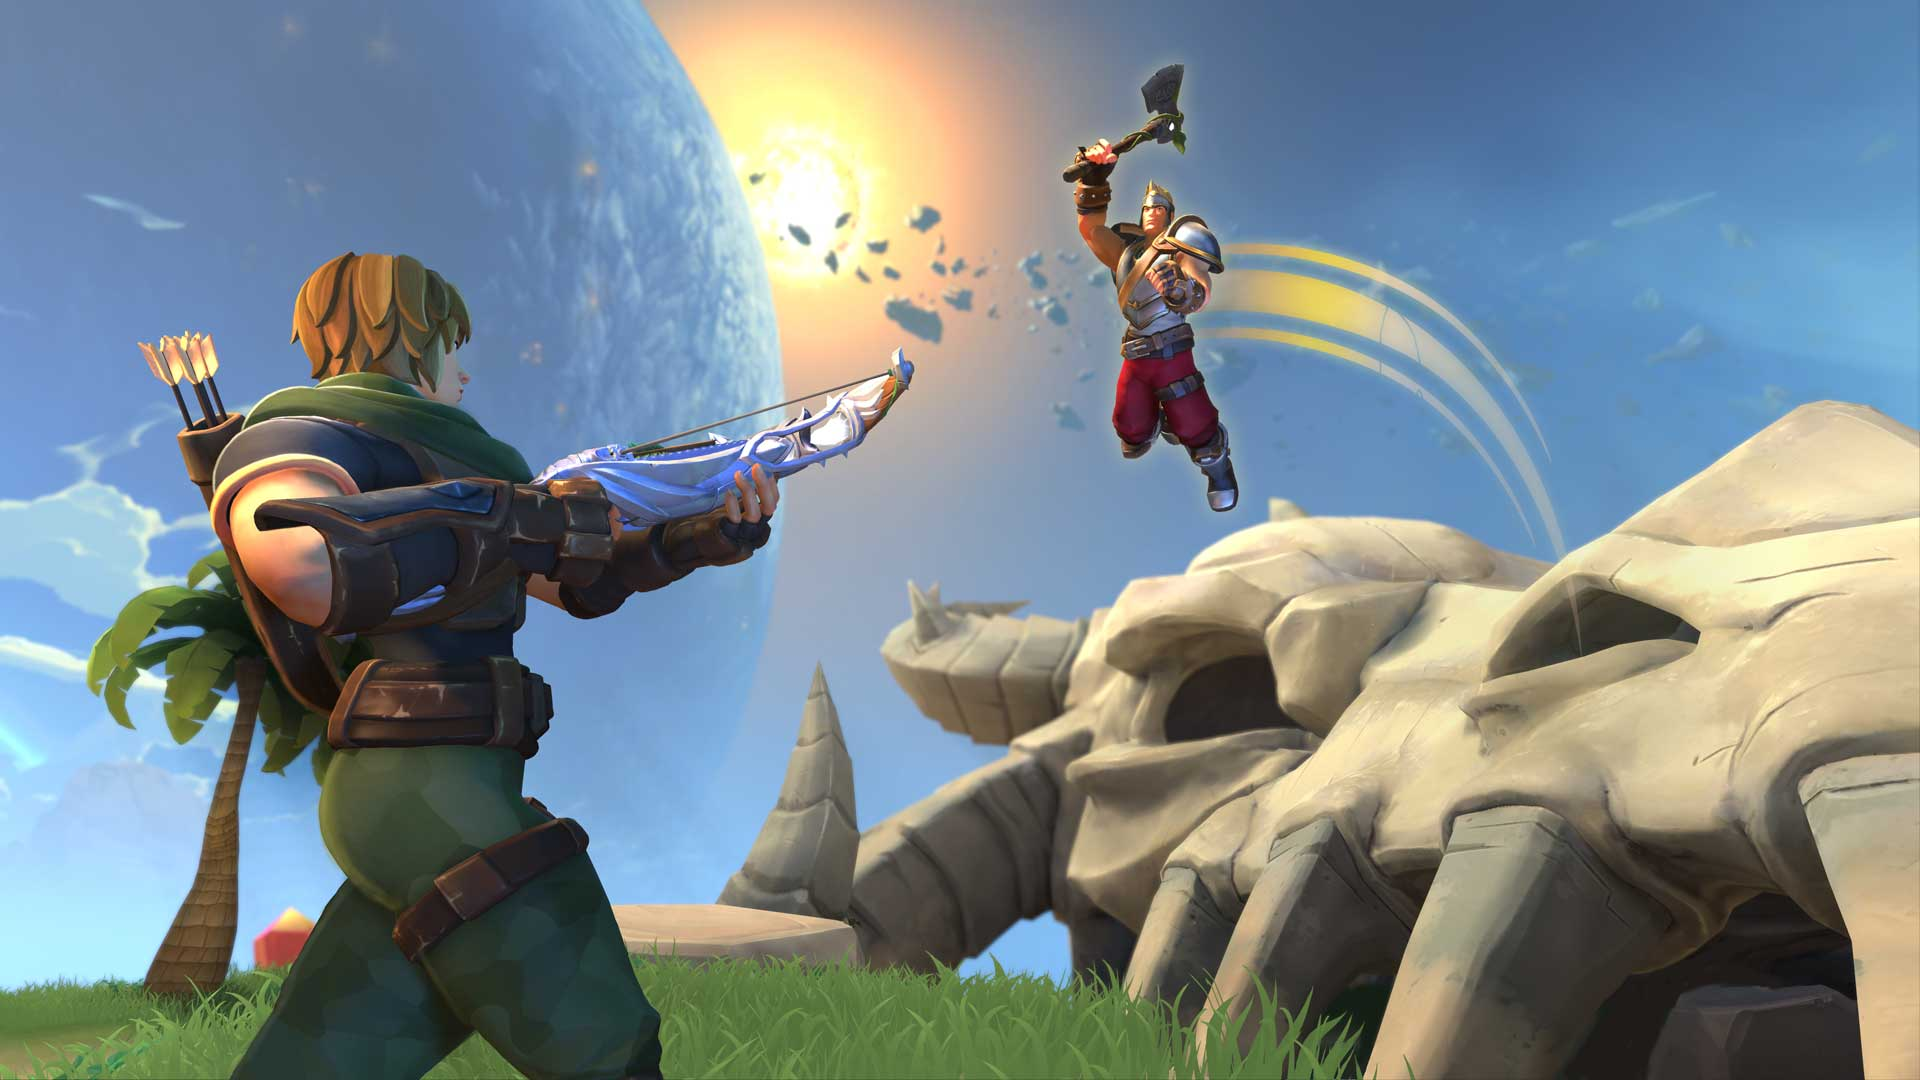 Realm Royale is now free to download on the Discord Store